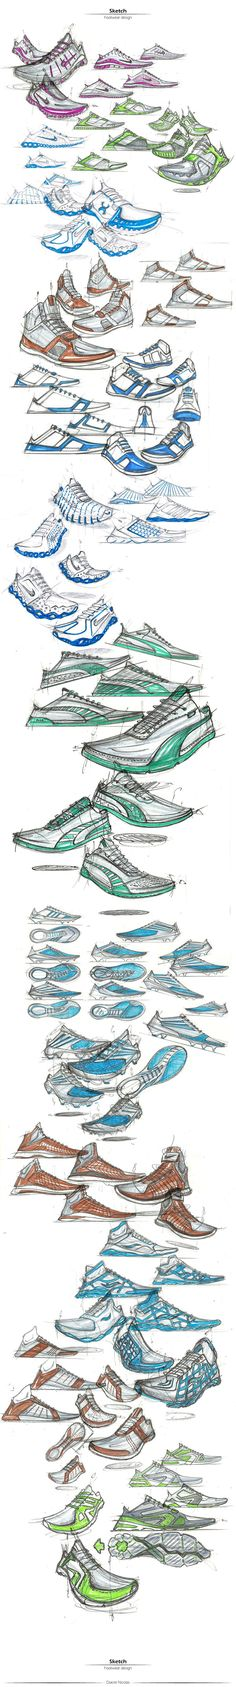 Footwear Design: Hand Sketch on Behance